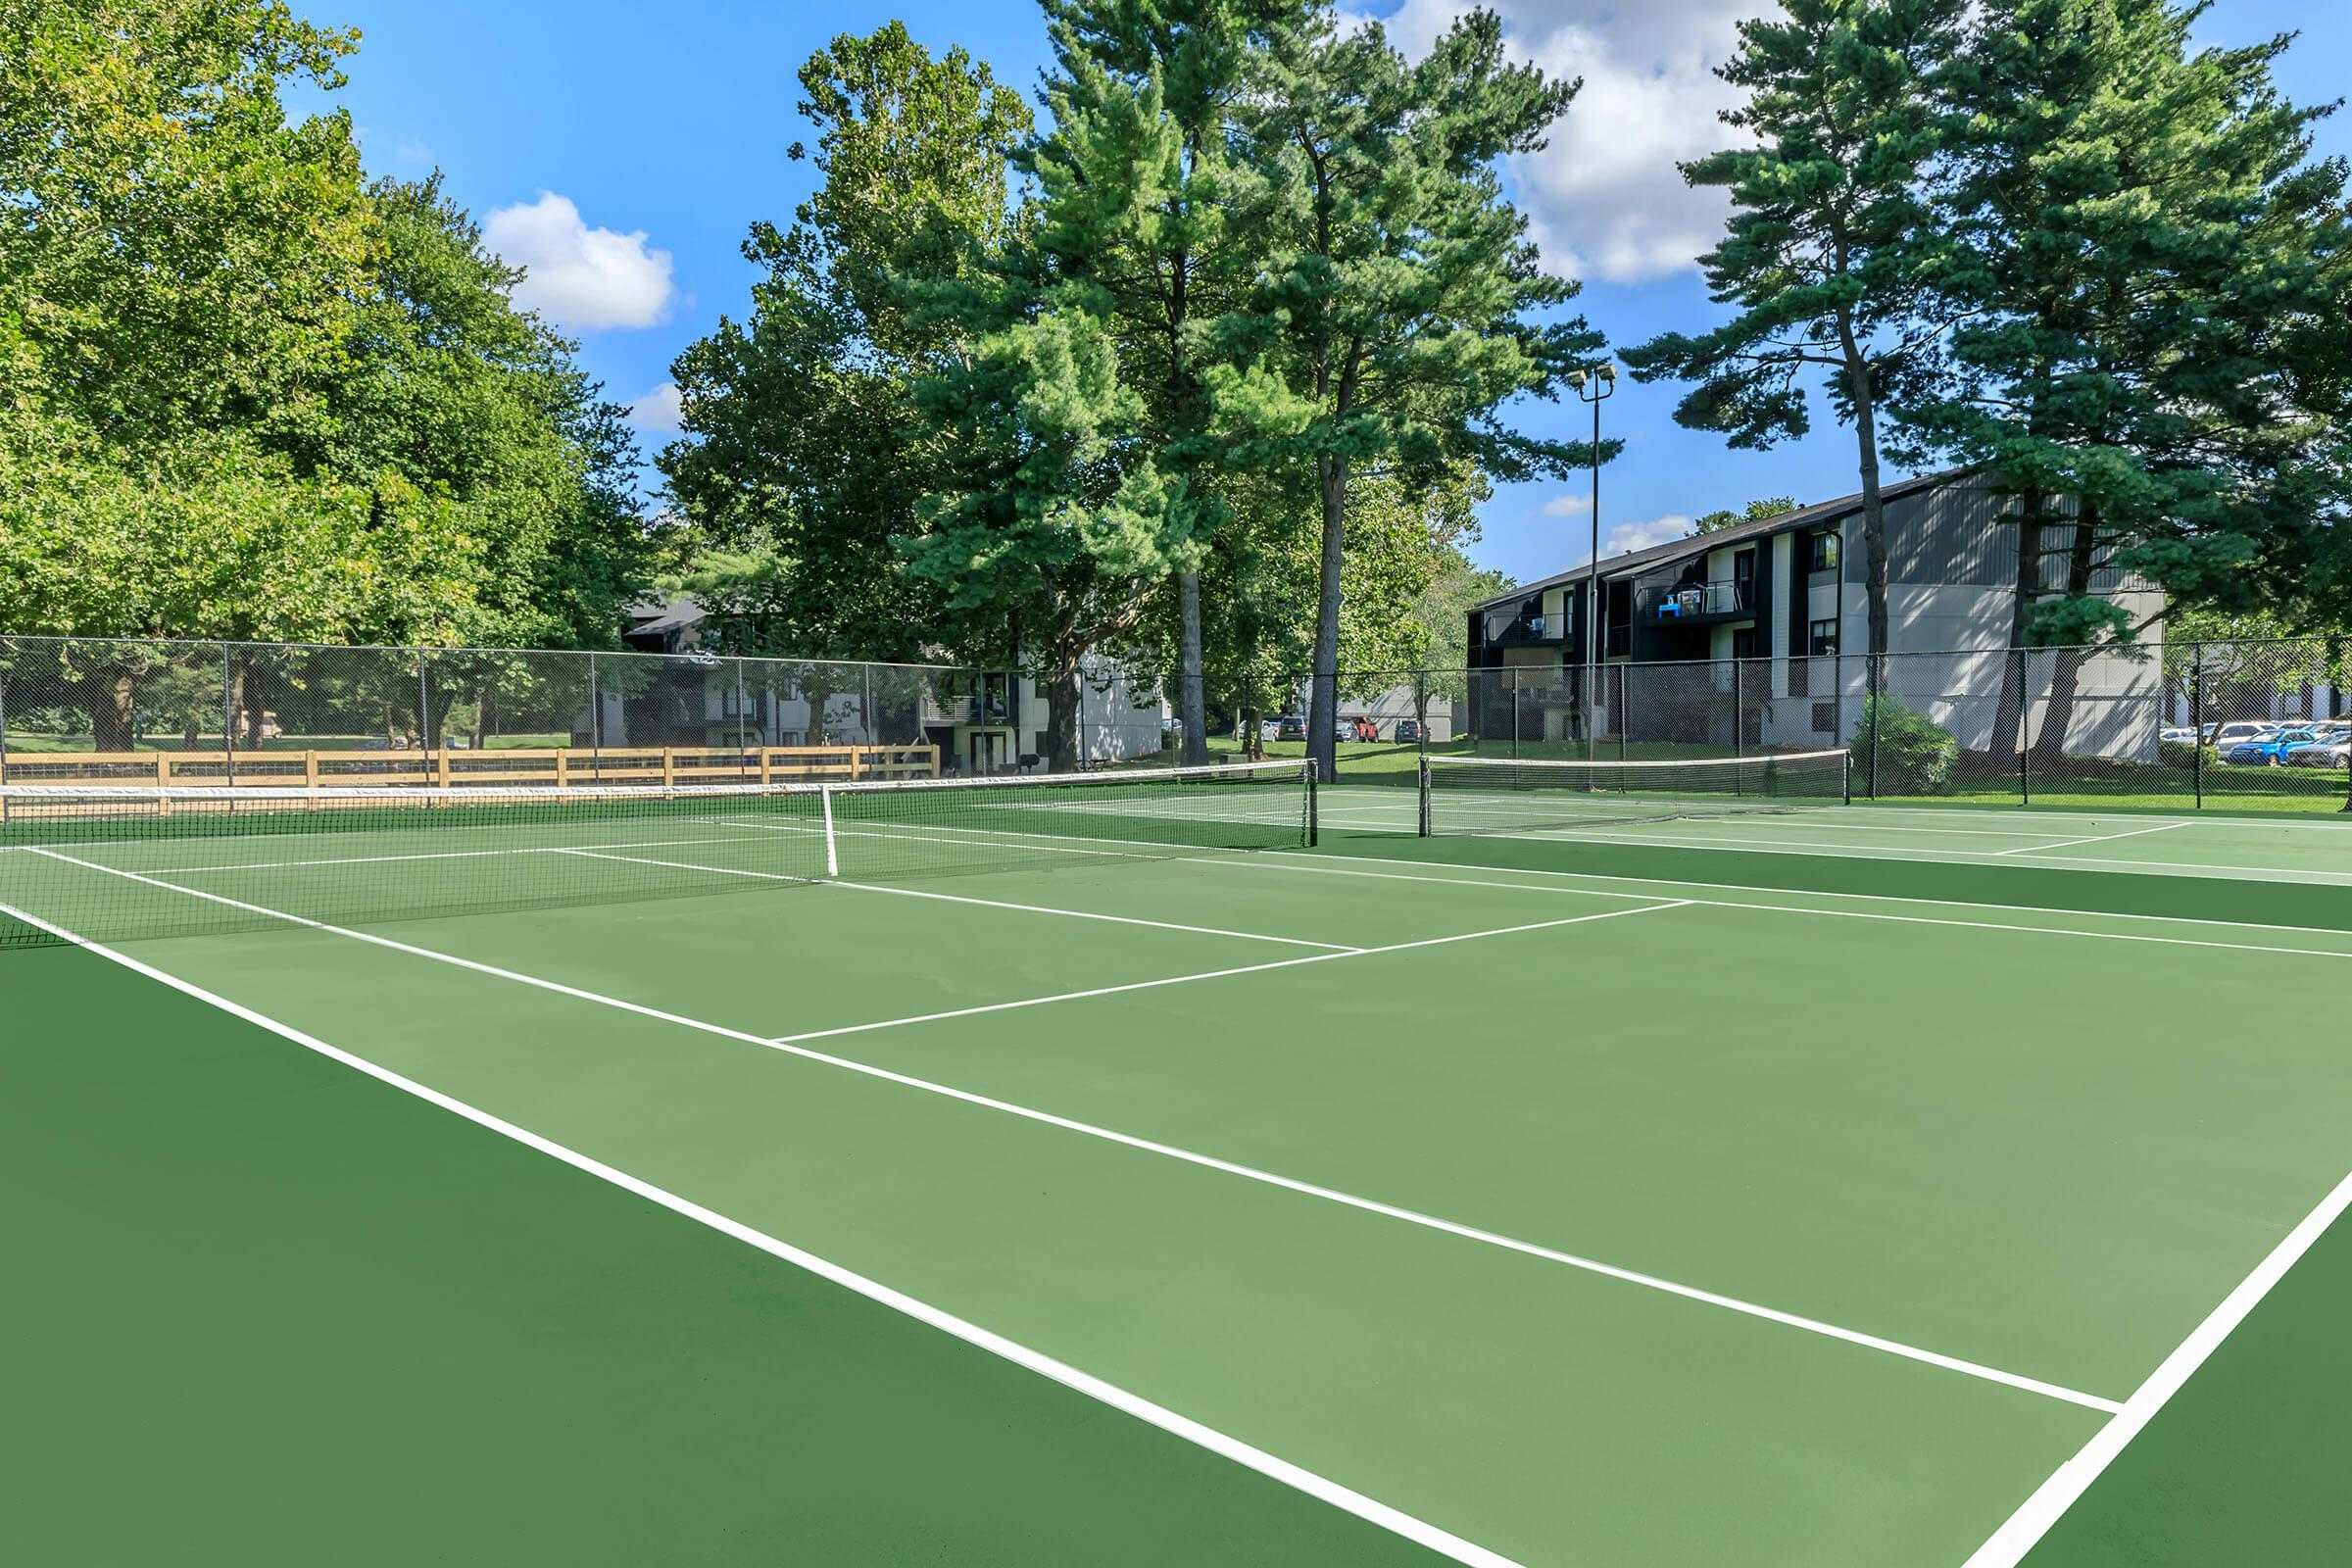 Tennis for Two Just Me and you at Brendon Park Apartments